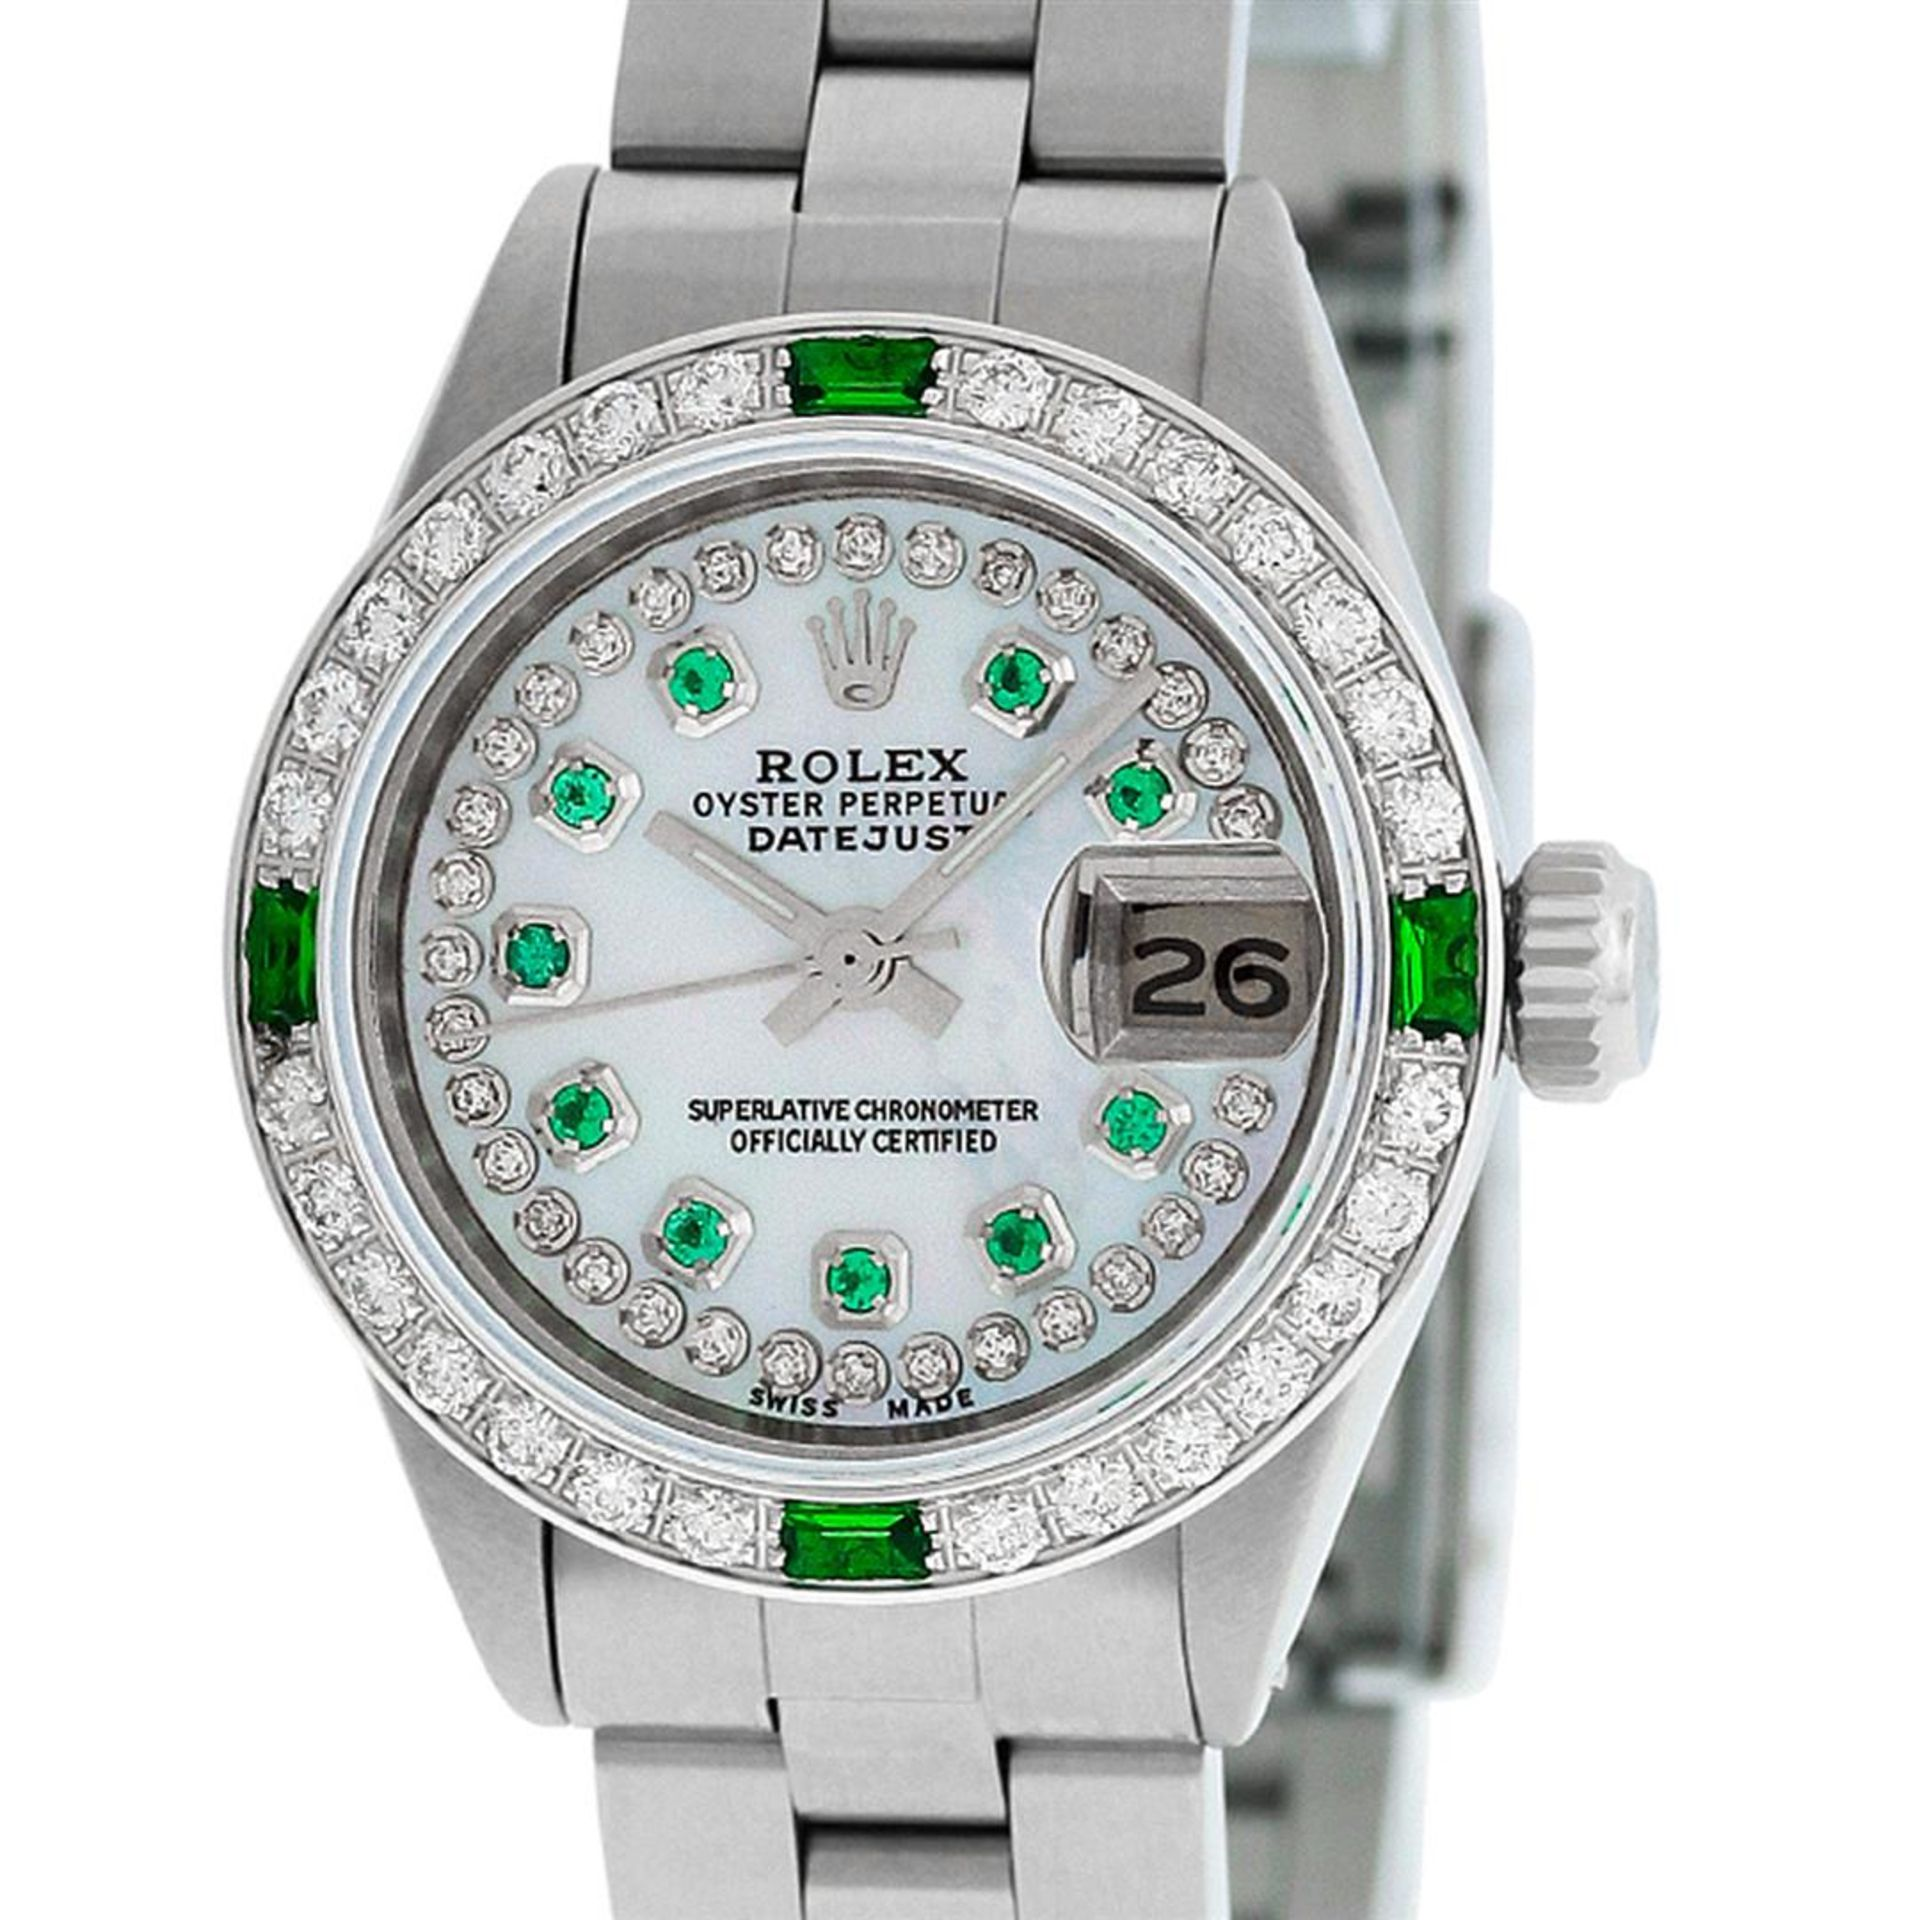 Rolex Ladies Stainless Steel MOP Emerald & Diamond Oyster Perpetaul Datejust Wri - Image 4 of 9